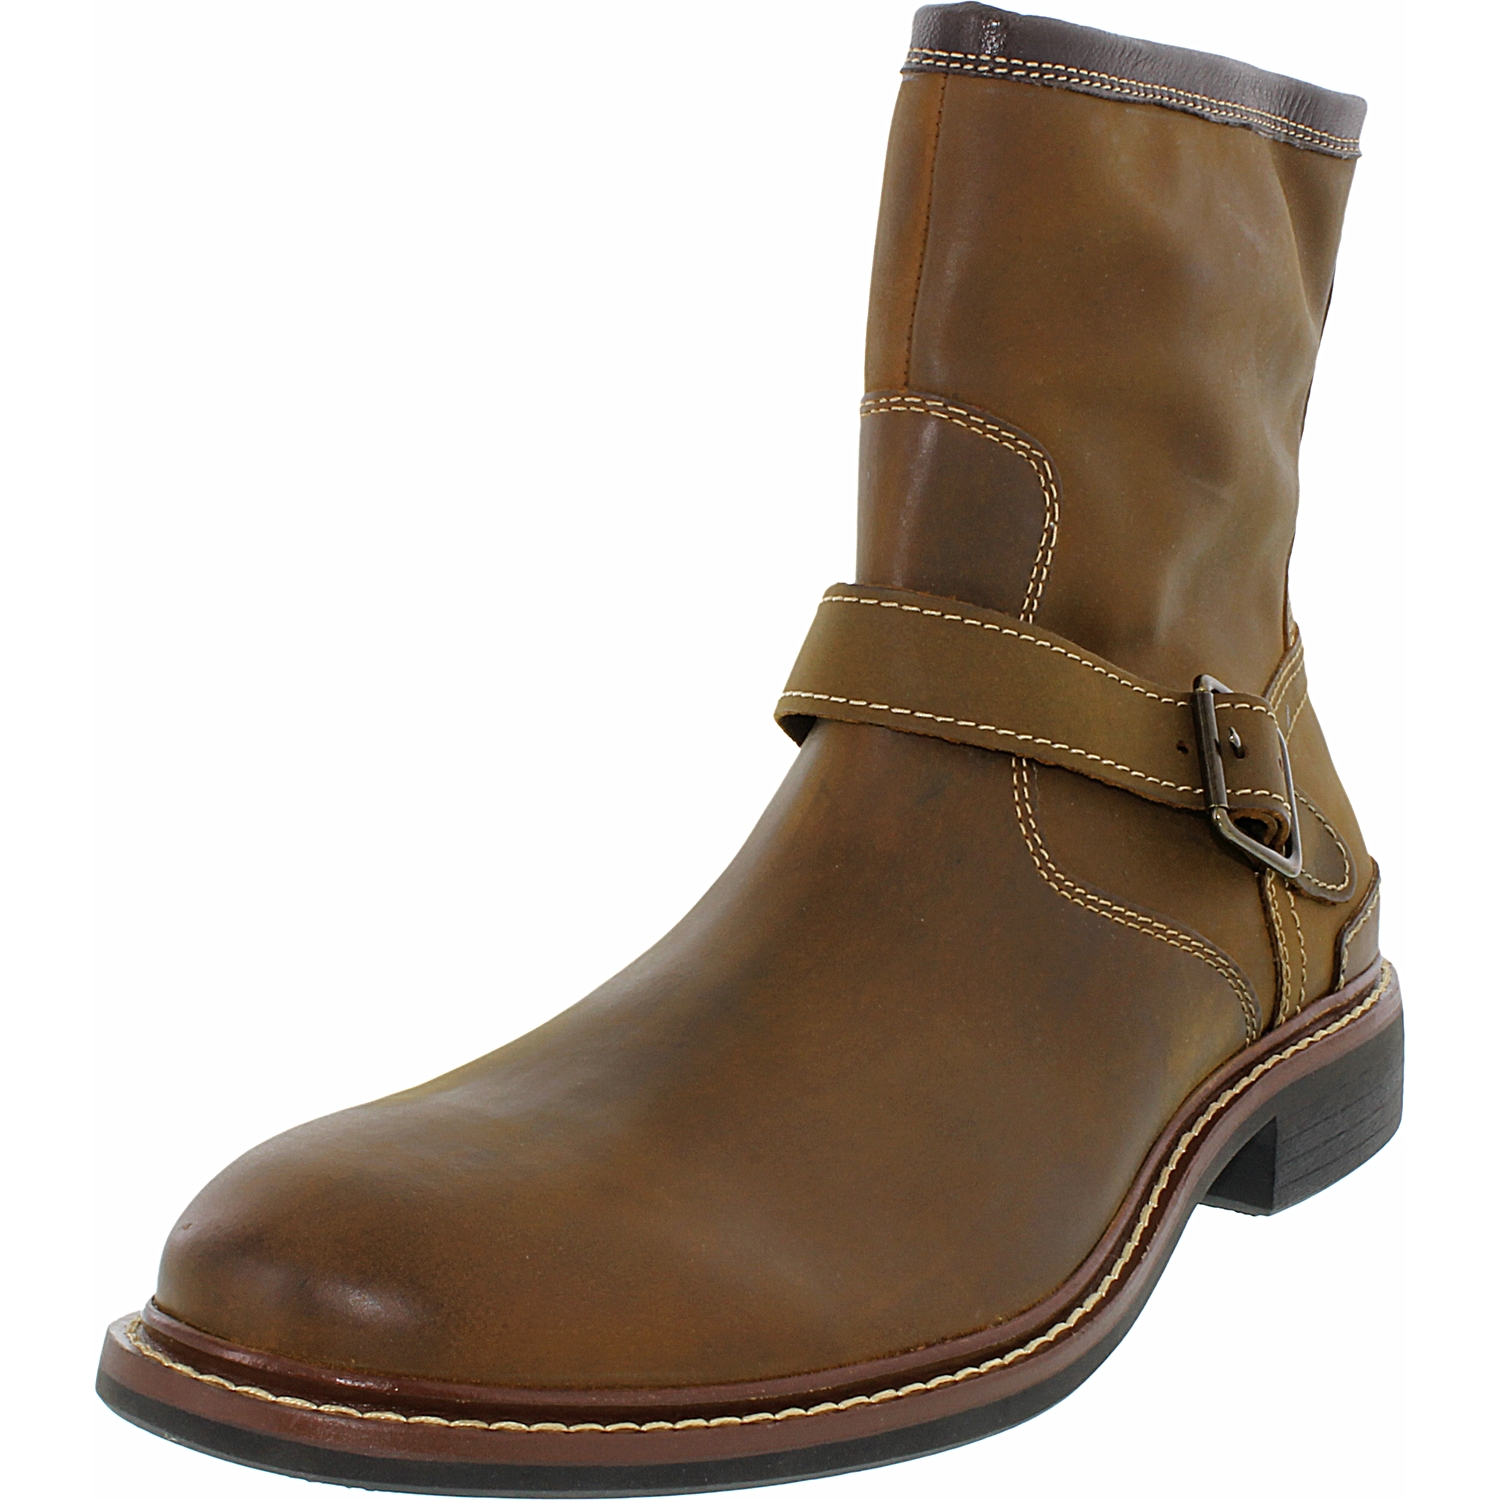 Cole Haan Men's Bryce Zip Boot Ankle-High Leather Boot